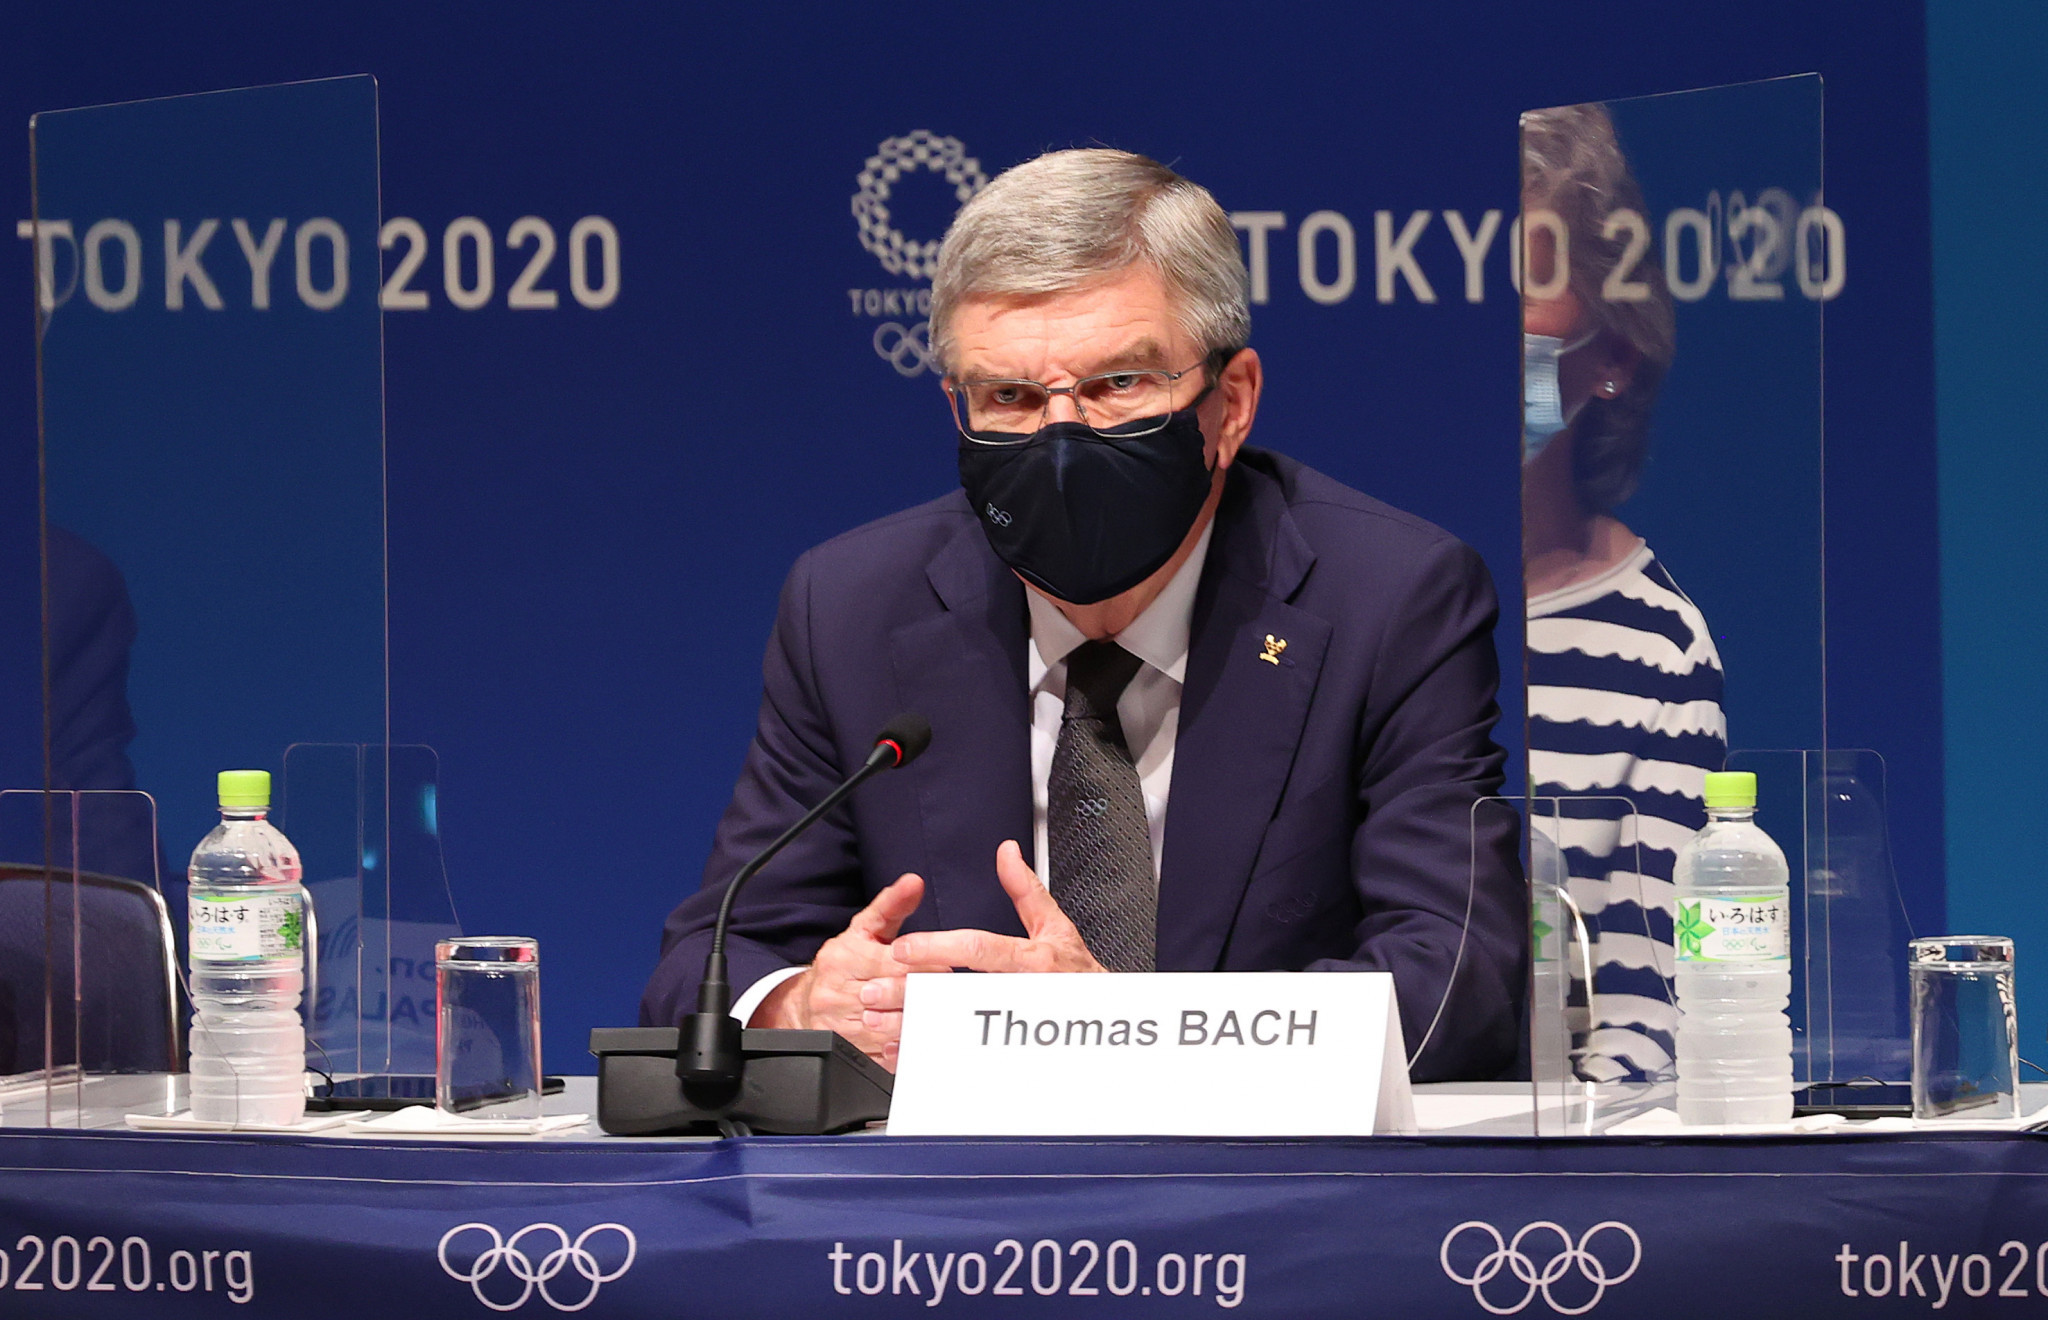 IOC President Thomas Bach has welcomed the beginning of the Tokyo 2020 Olympic Games ©Getty Images